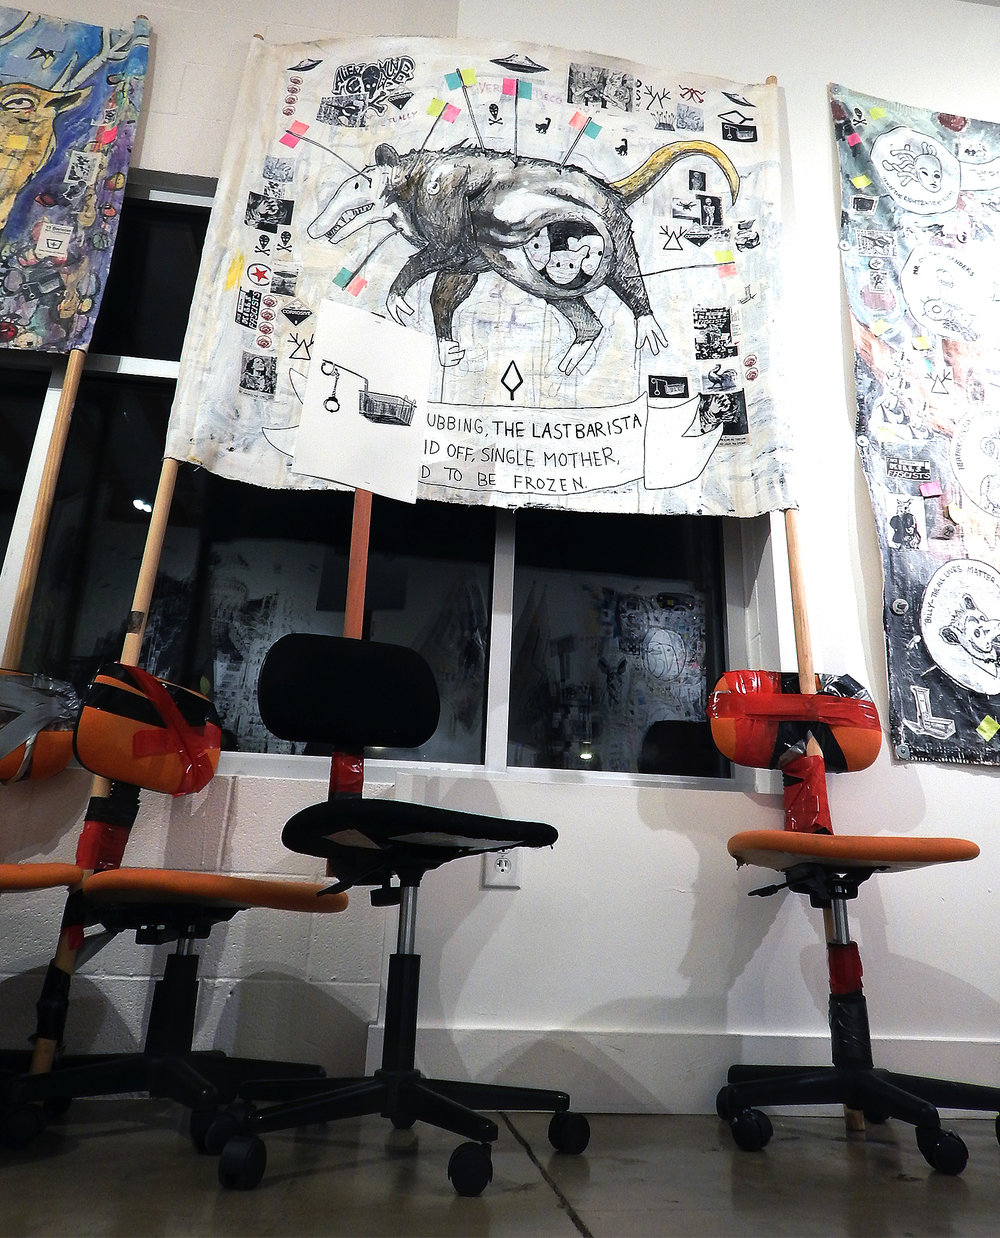 The Last Barista (Revolt of the Swivel Chairs)    Acrylic, marker, photocopies, stickers, post-it notes, buttons, coffee and mixed media on canvas banner with wood and swivel chairs (2017-2018).